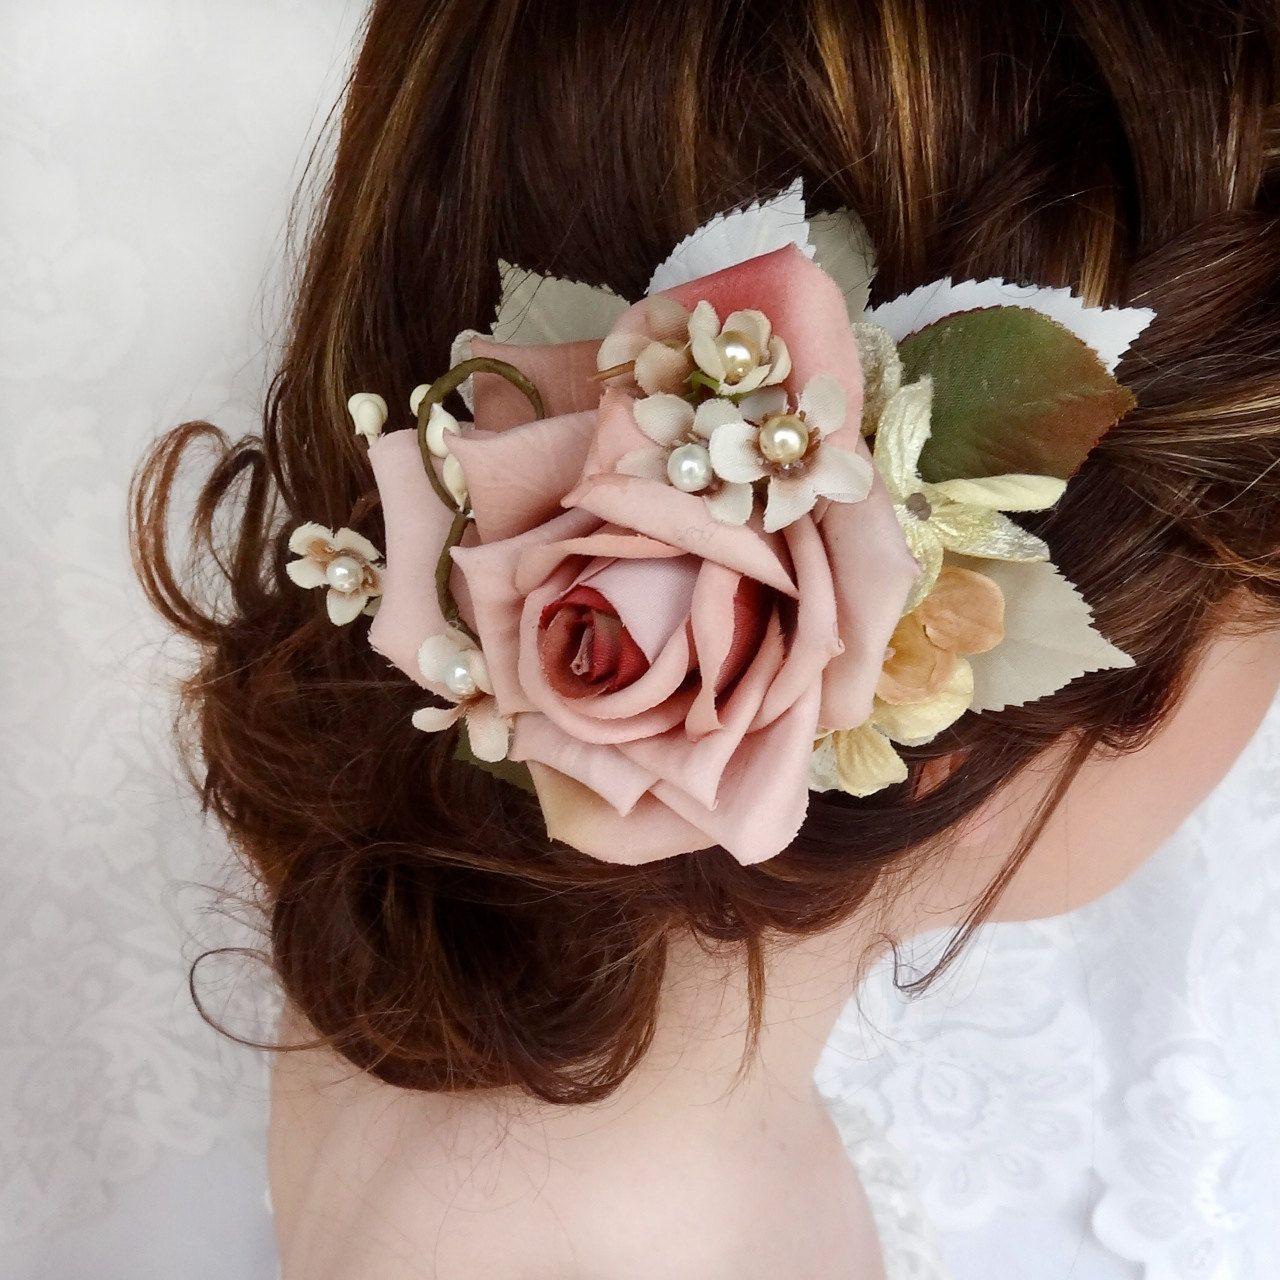 Floral Wedding Hair Comb By Britten: Bridal Hair Clip, Dusty Pink Flower Hair Accessory